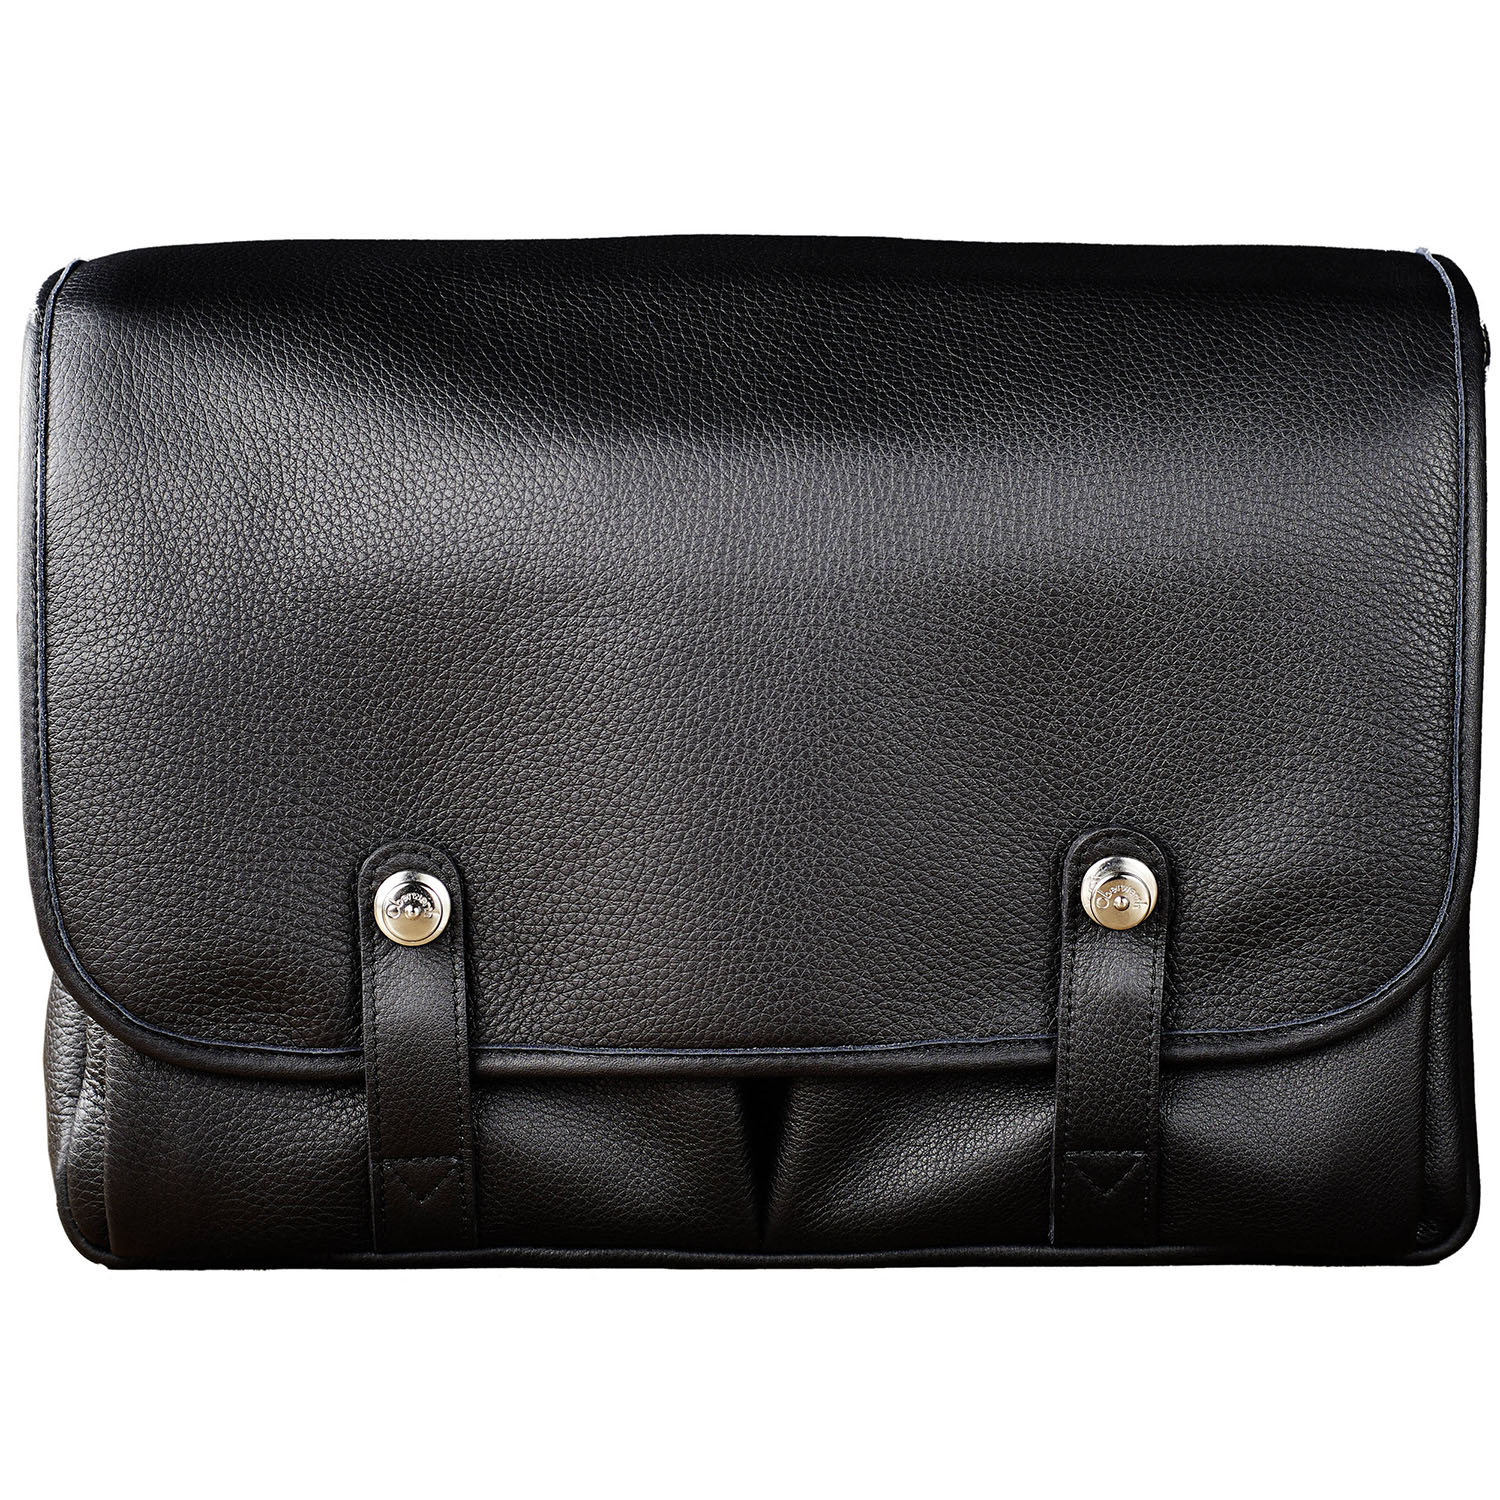 Oberwerth William Gentlemensbag